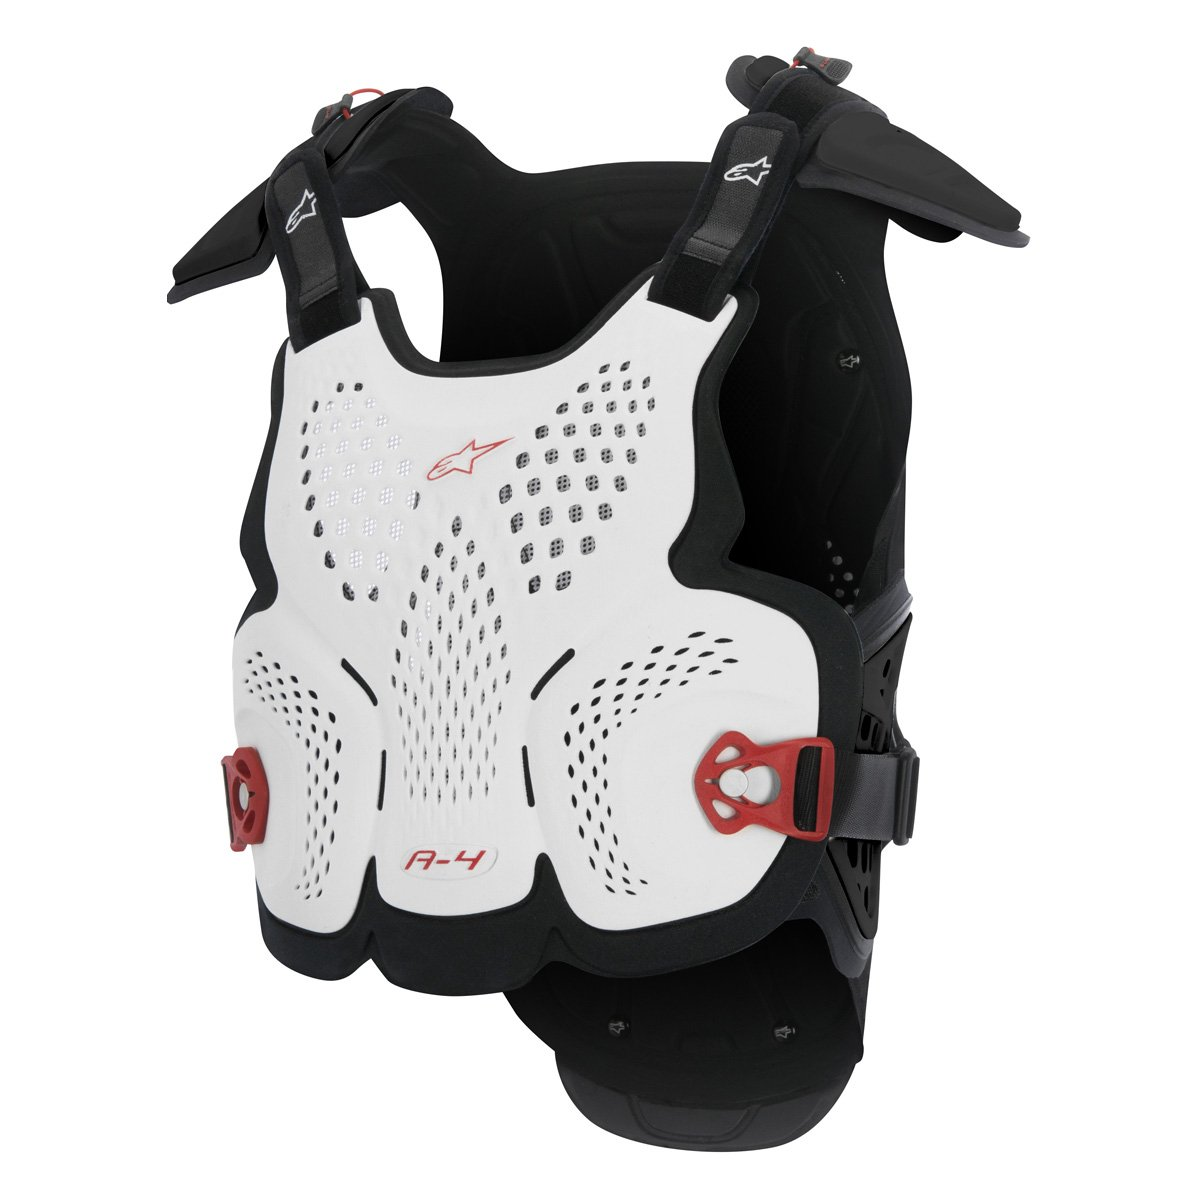 Alpinestars Men's A-4 Chest Protector (White/Black/Red, X-Large/XX-Large) by Alpinestars